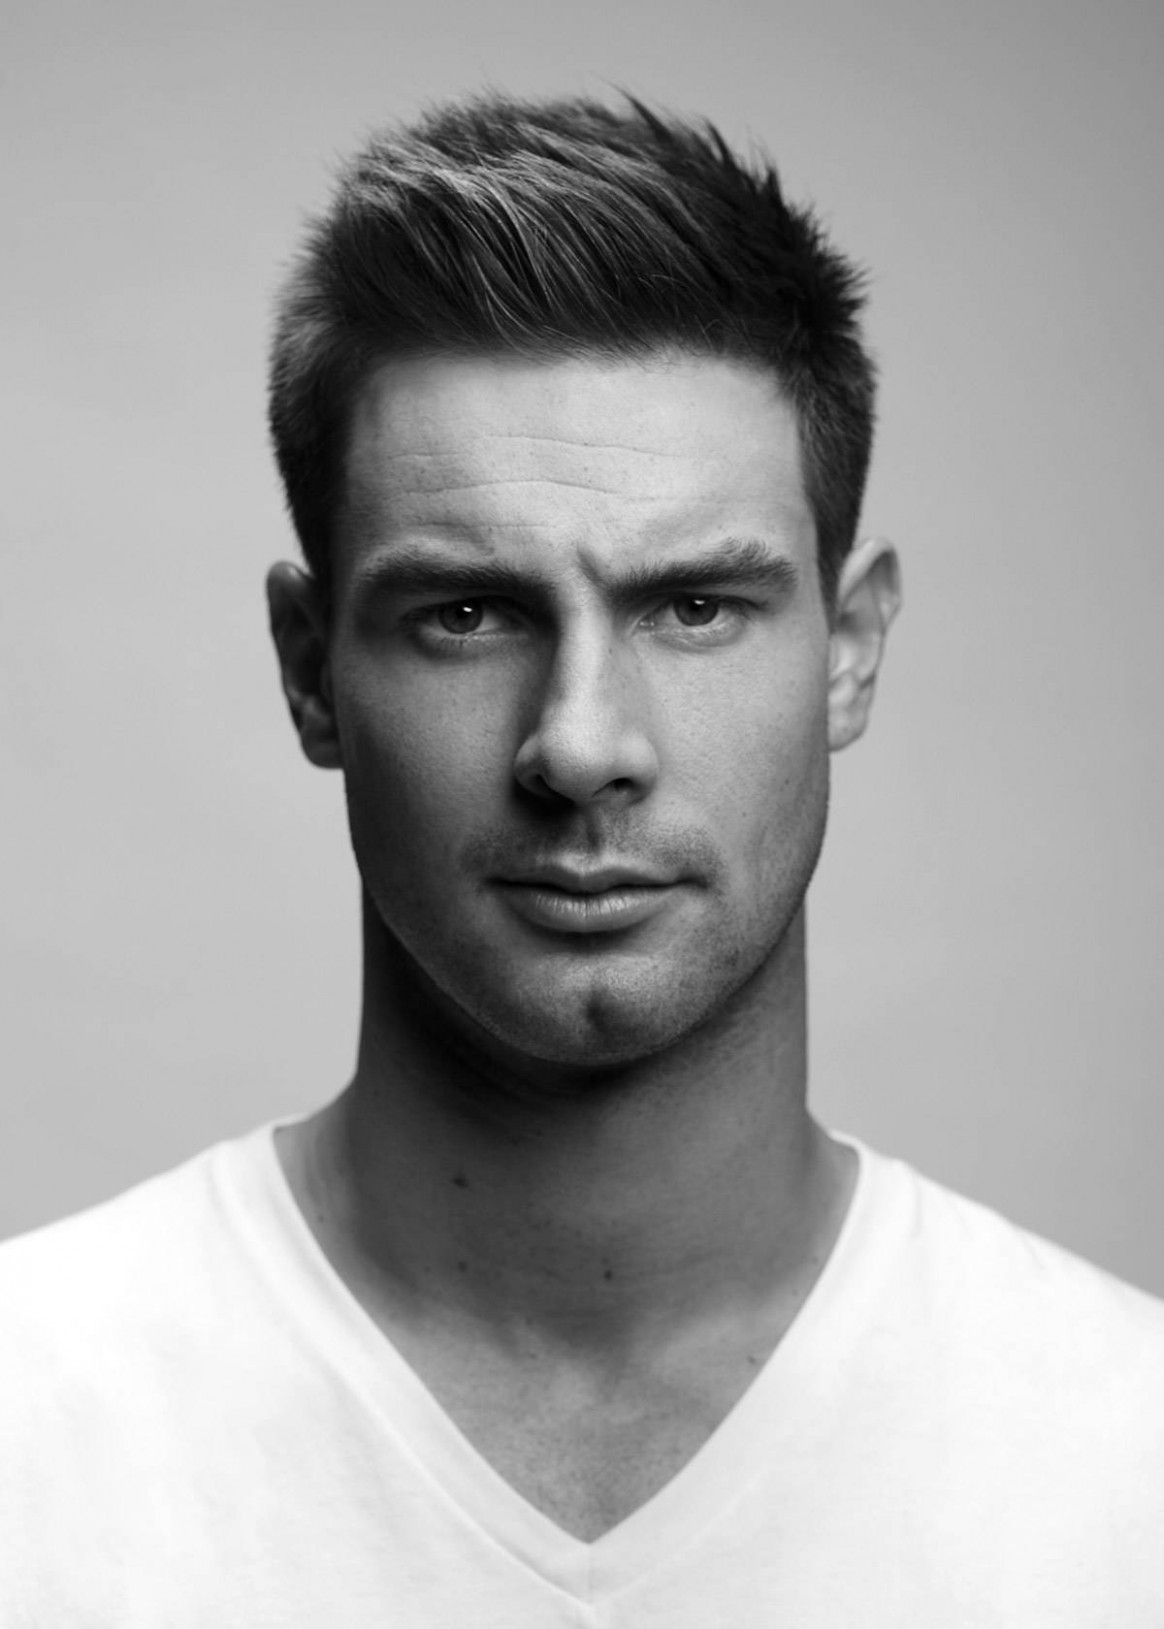 11 Easy & Stylish Short Hairstyles For Men [11 Edition] Short Hairstyles For Guys